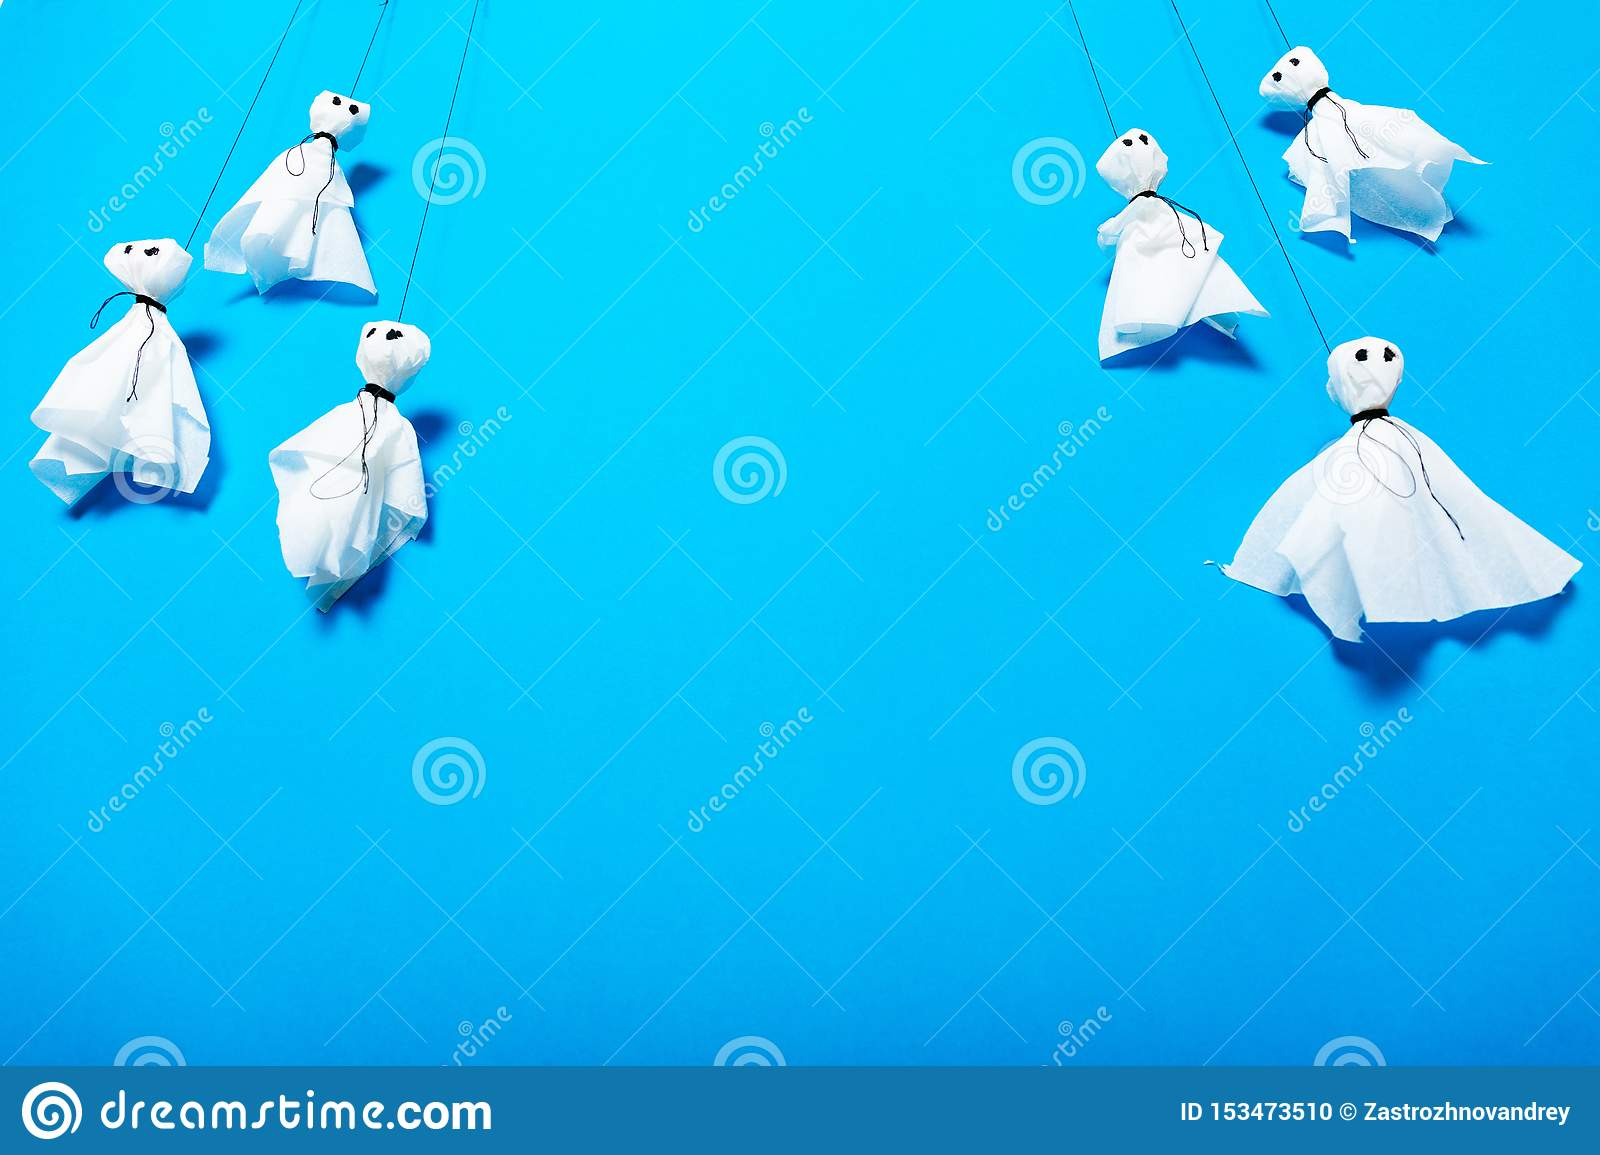 Kids spooky art, halloween celebration, paper ghosts background. Copy space for text